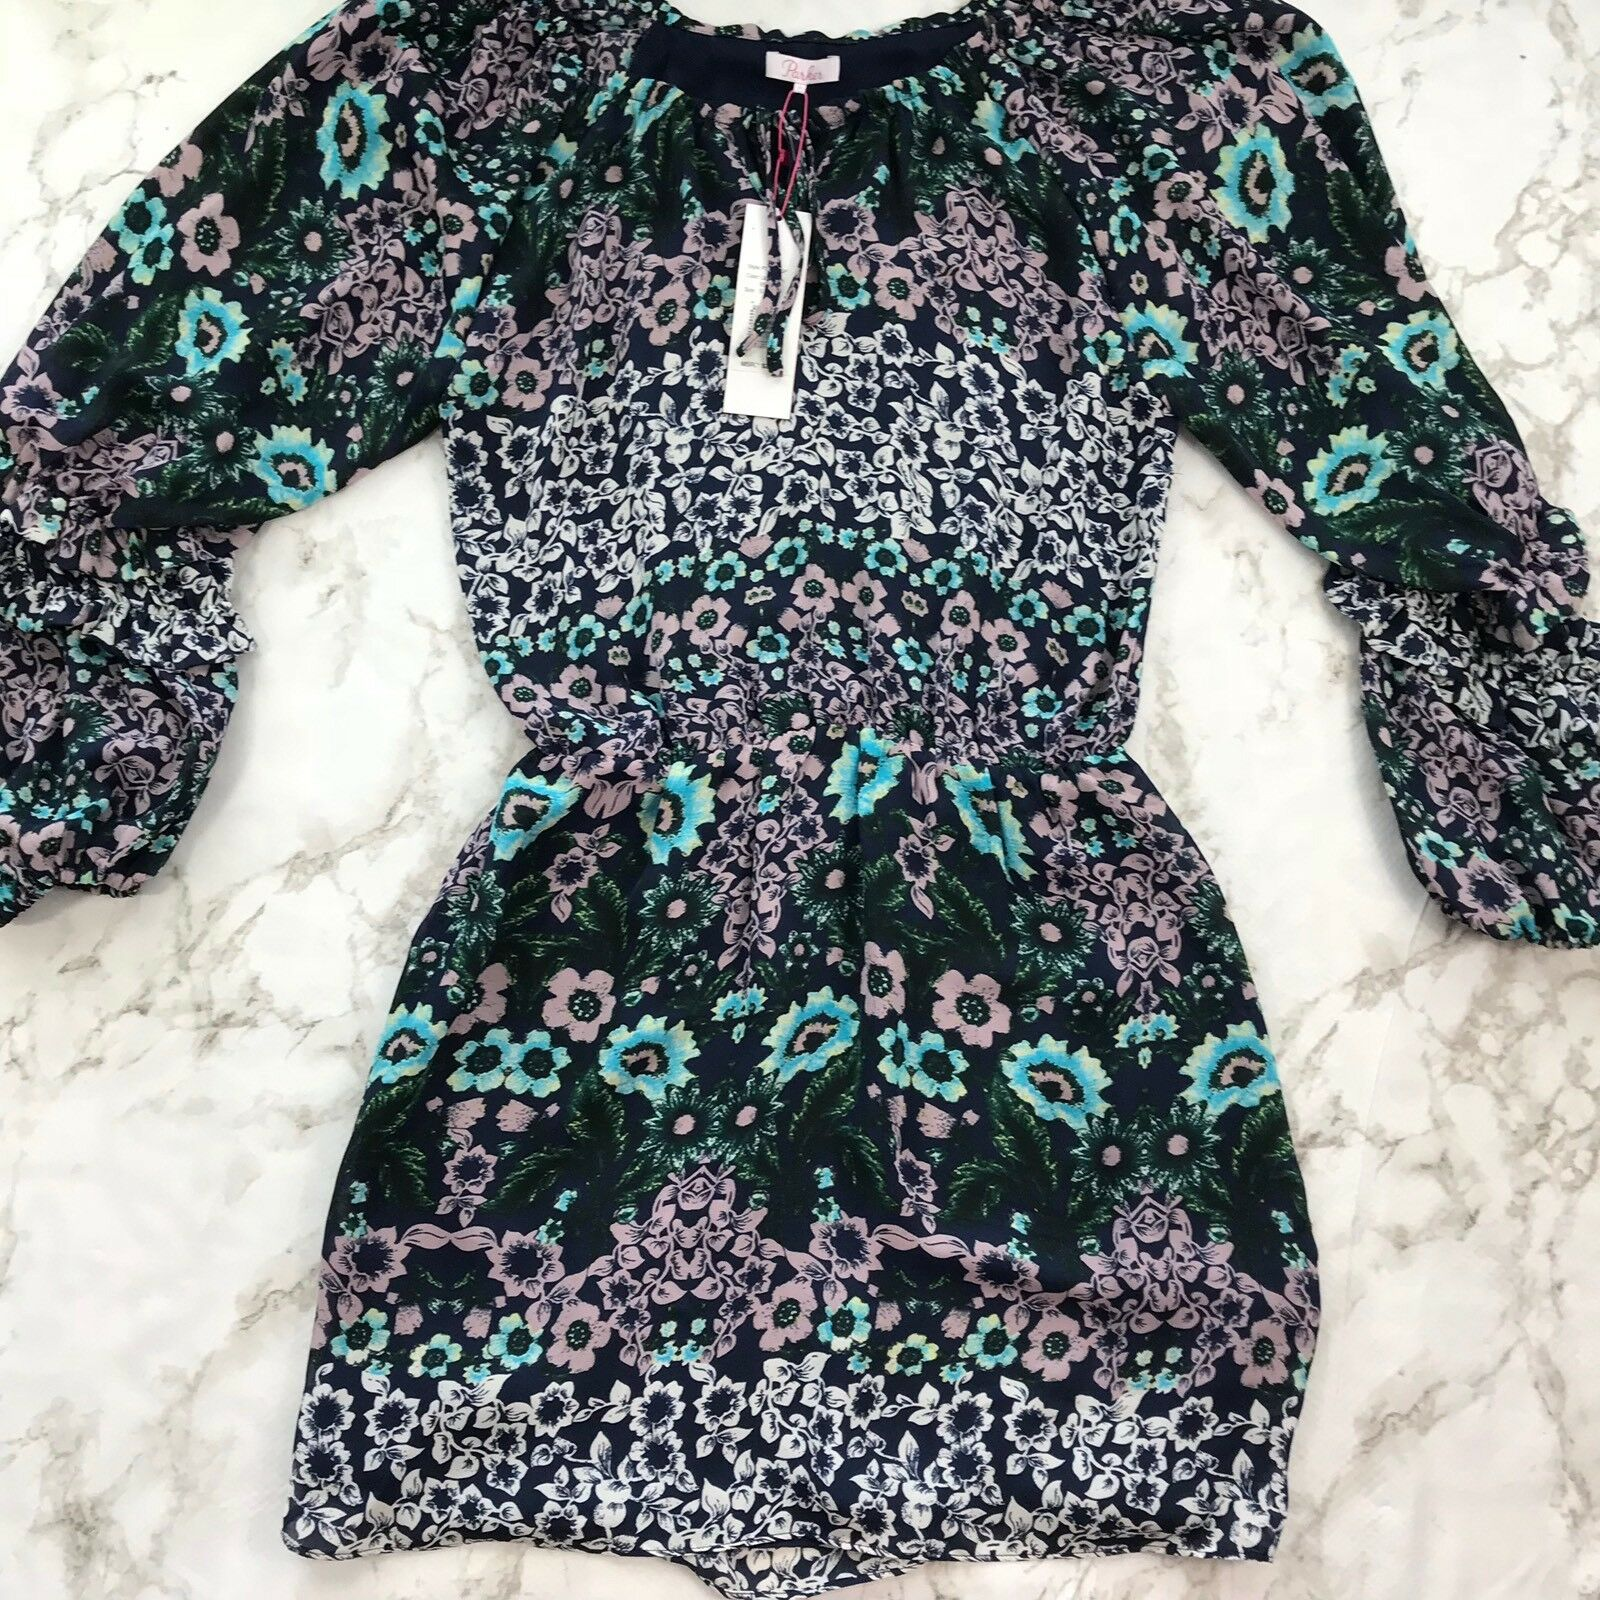 NWT Parker Long Sleeve Printed Floral Dress Size Small Spring purplec Eden BL